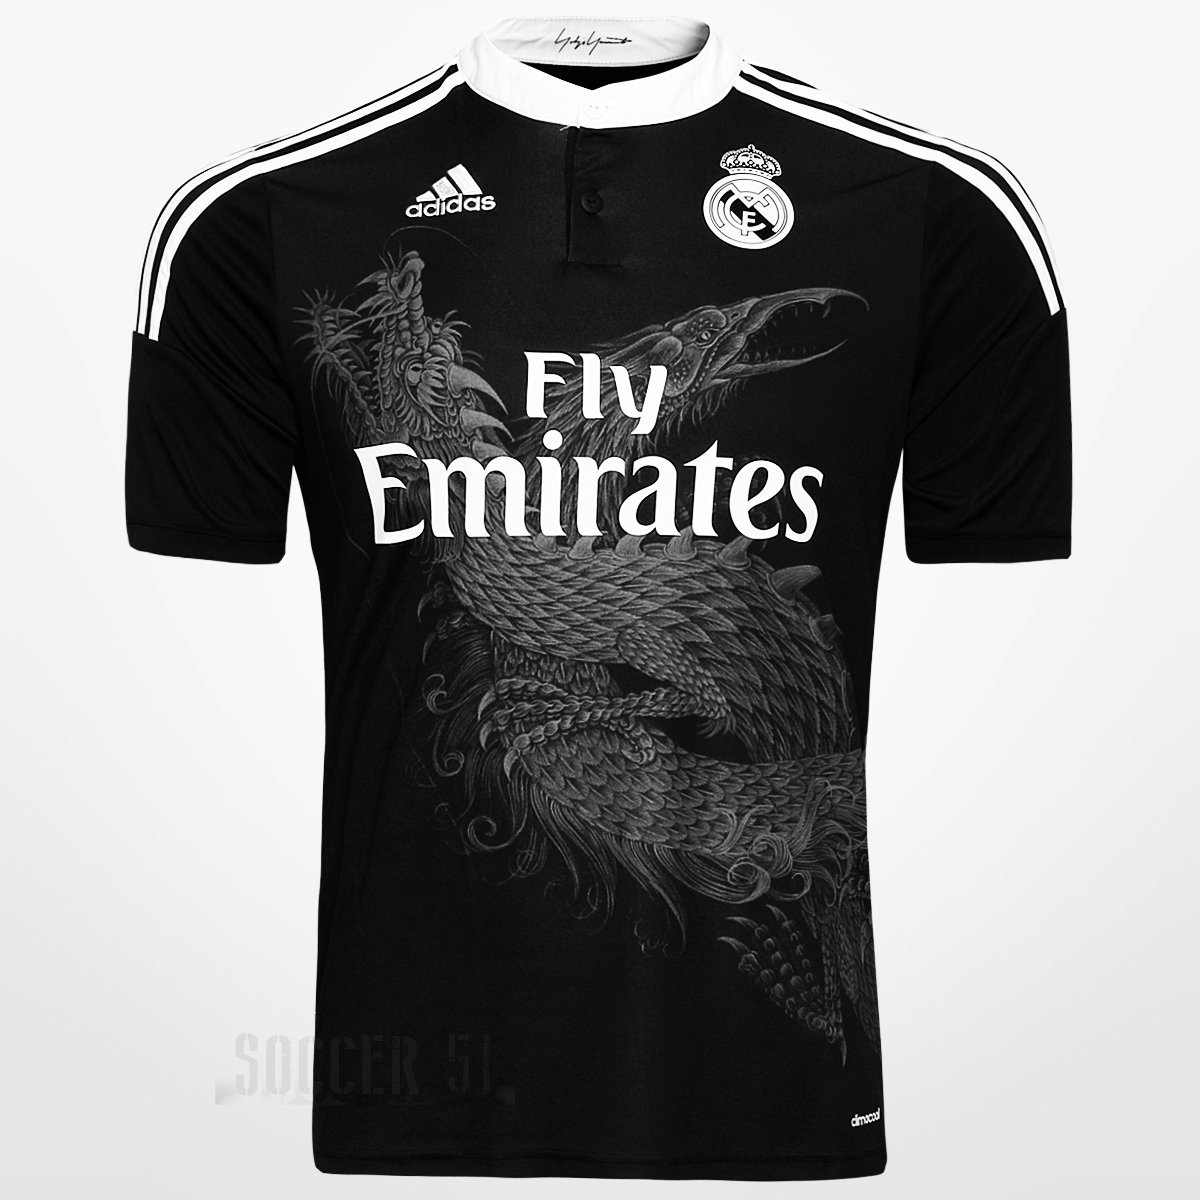 buy popular 582ea 40e46 Amazon.com : Real Madrid Black Dragon 2015 (12-13 yrs, Other ...